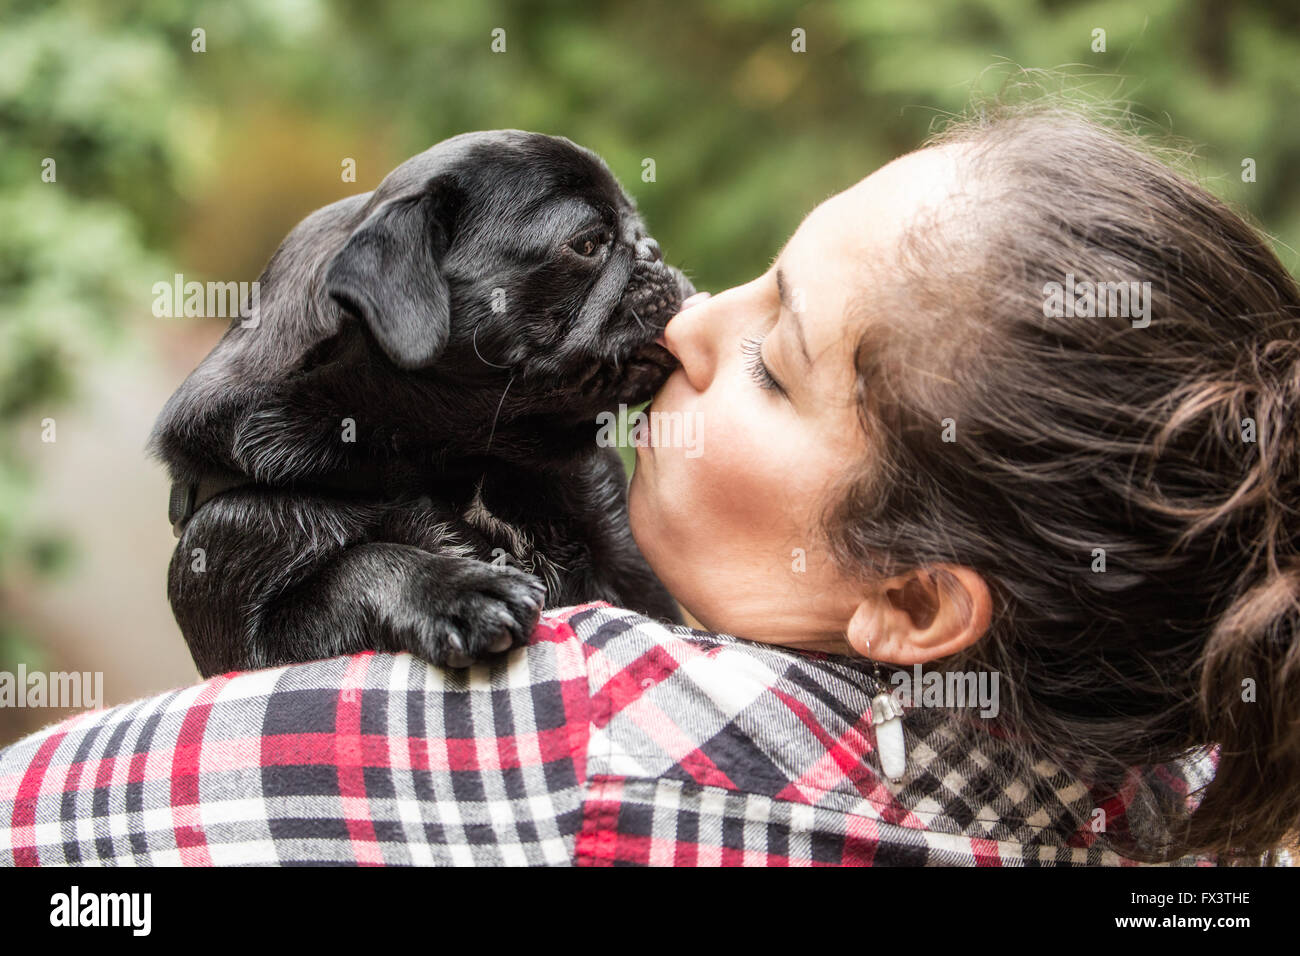 Kato, a black Pug puppy giving his owner a doggy kiss, in Issaquah, Washington, USA - Stock Image